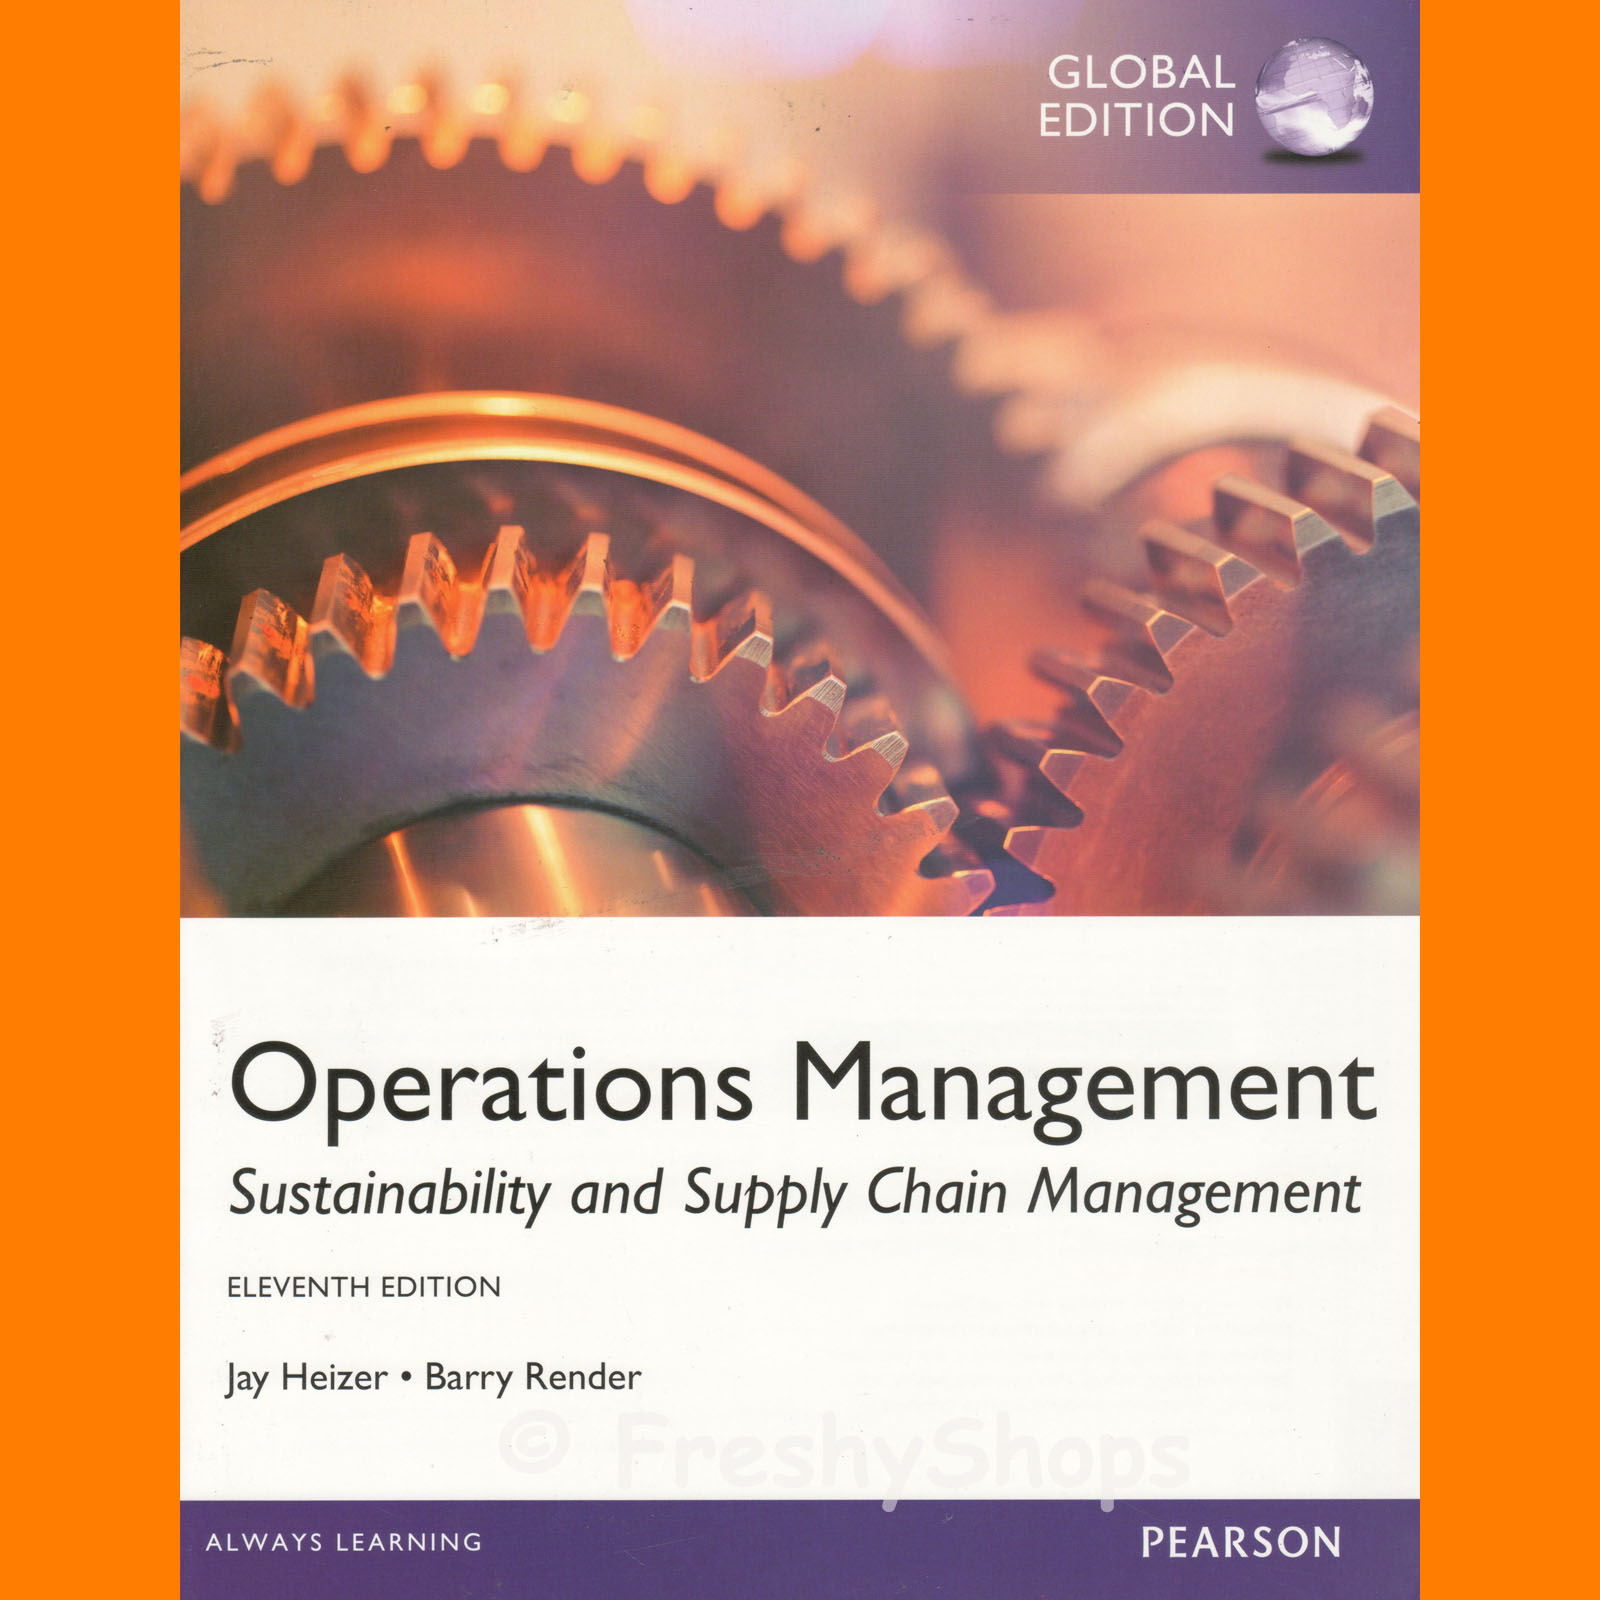 operations management 11th edition heizer pdf